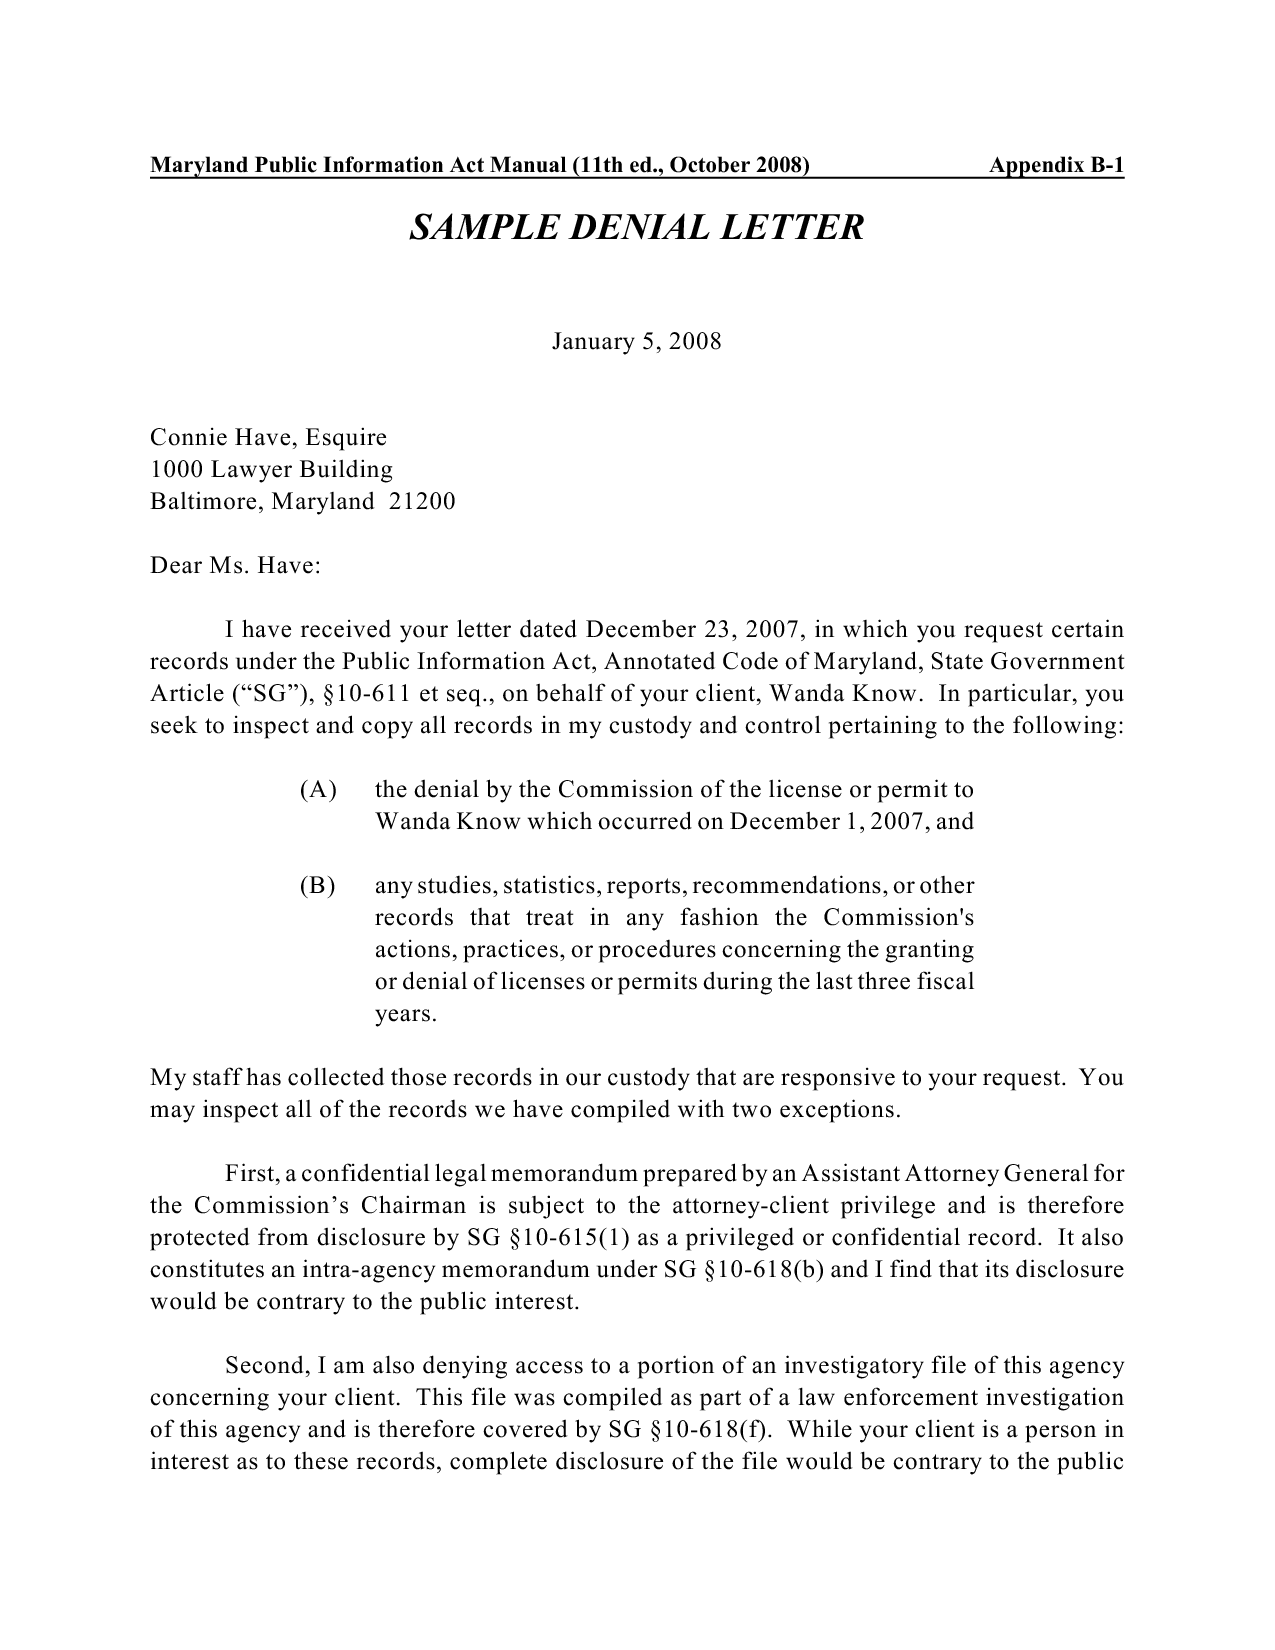 Ssn denial letter rejection letters credit and debt dispute home